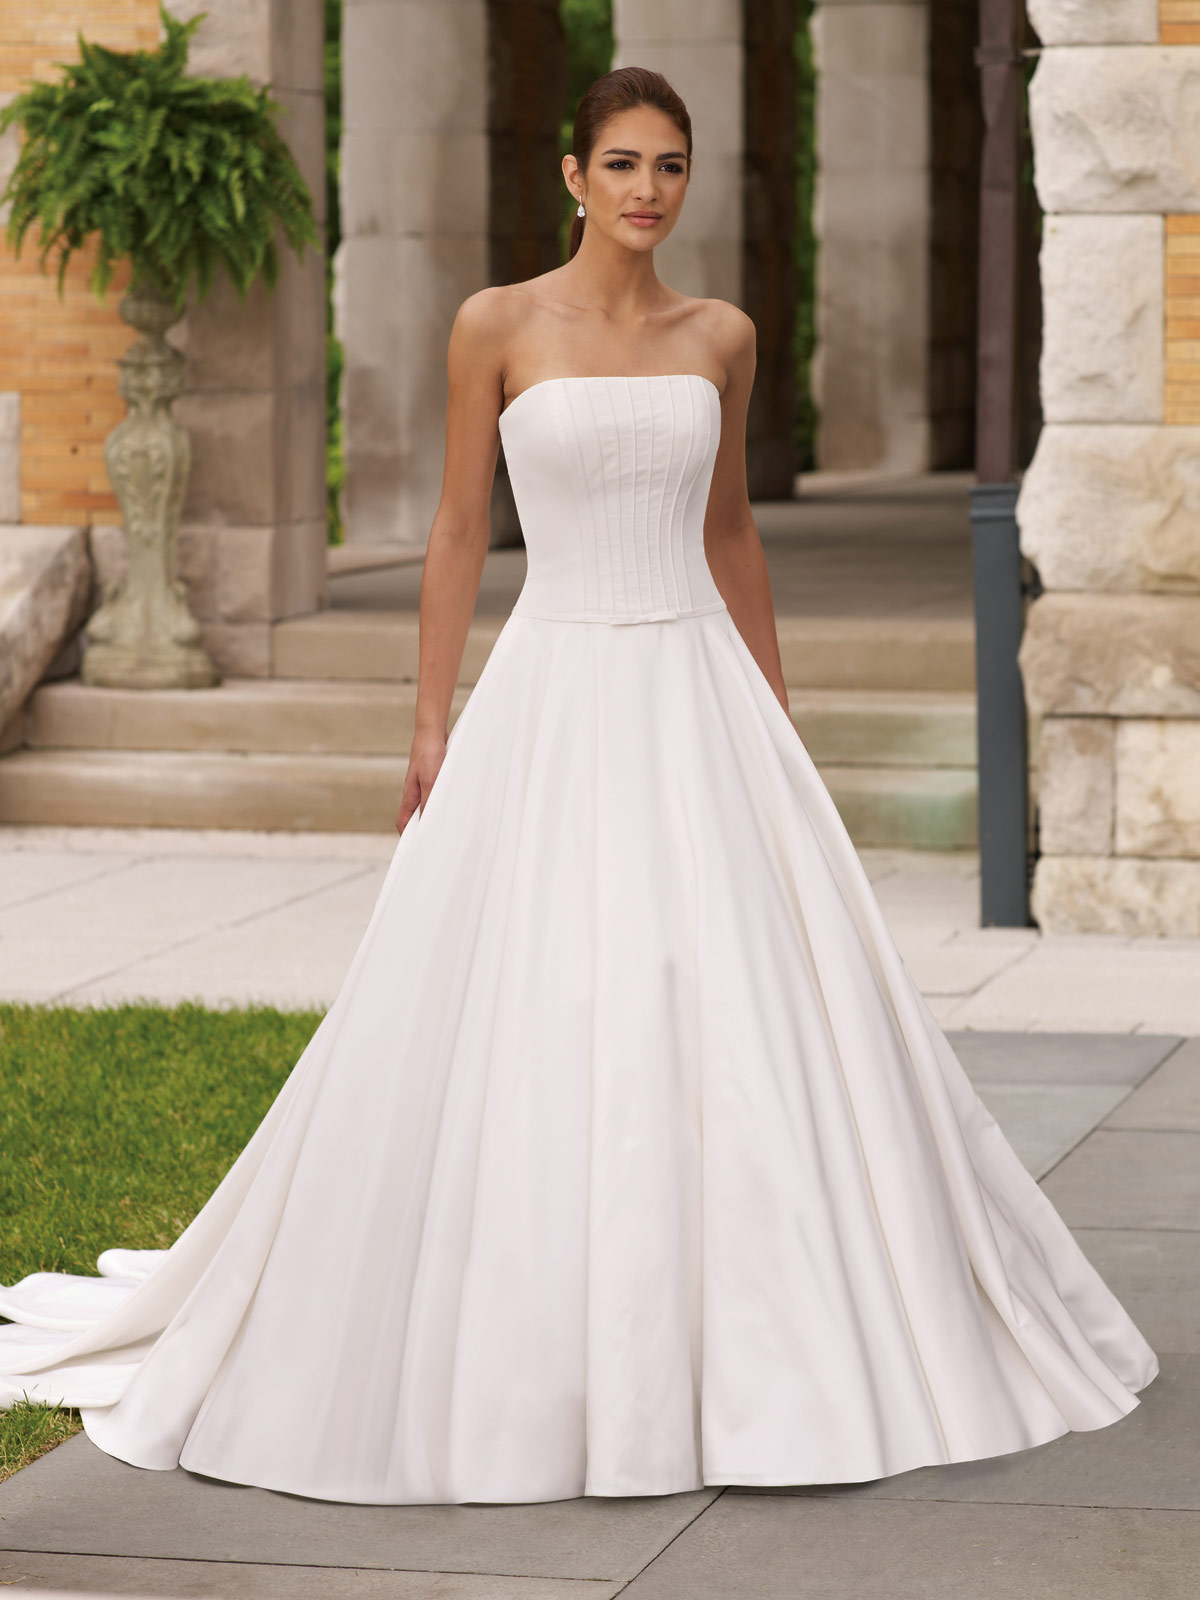 example formal photos design choices wedding gowns